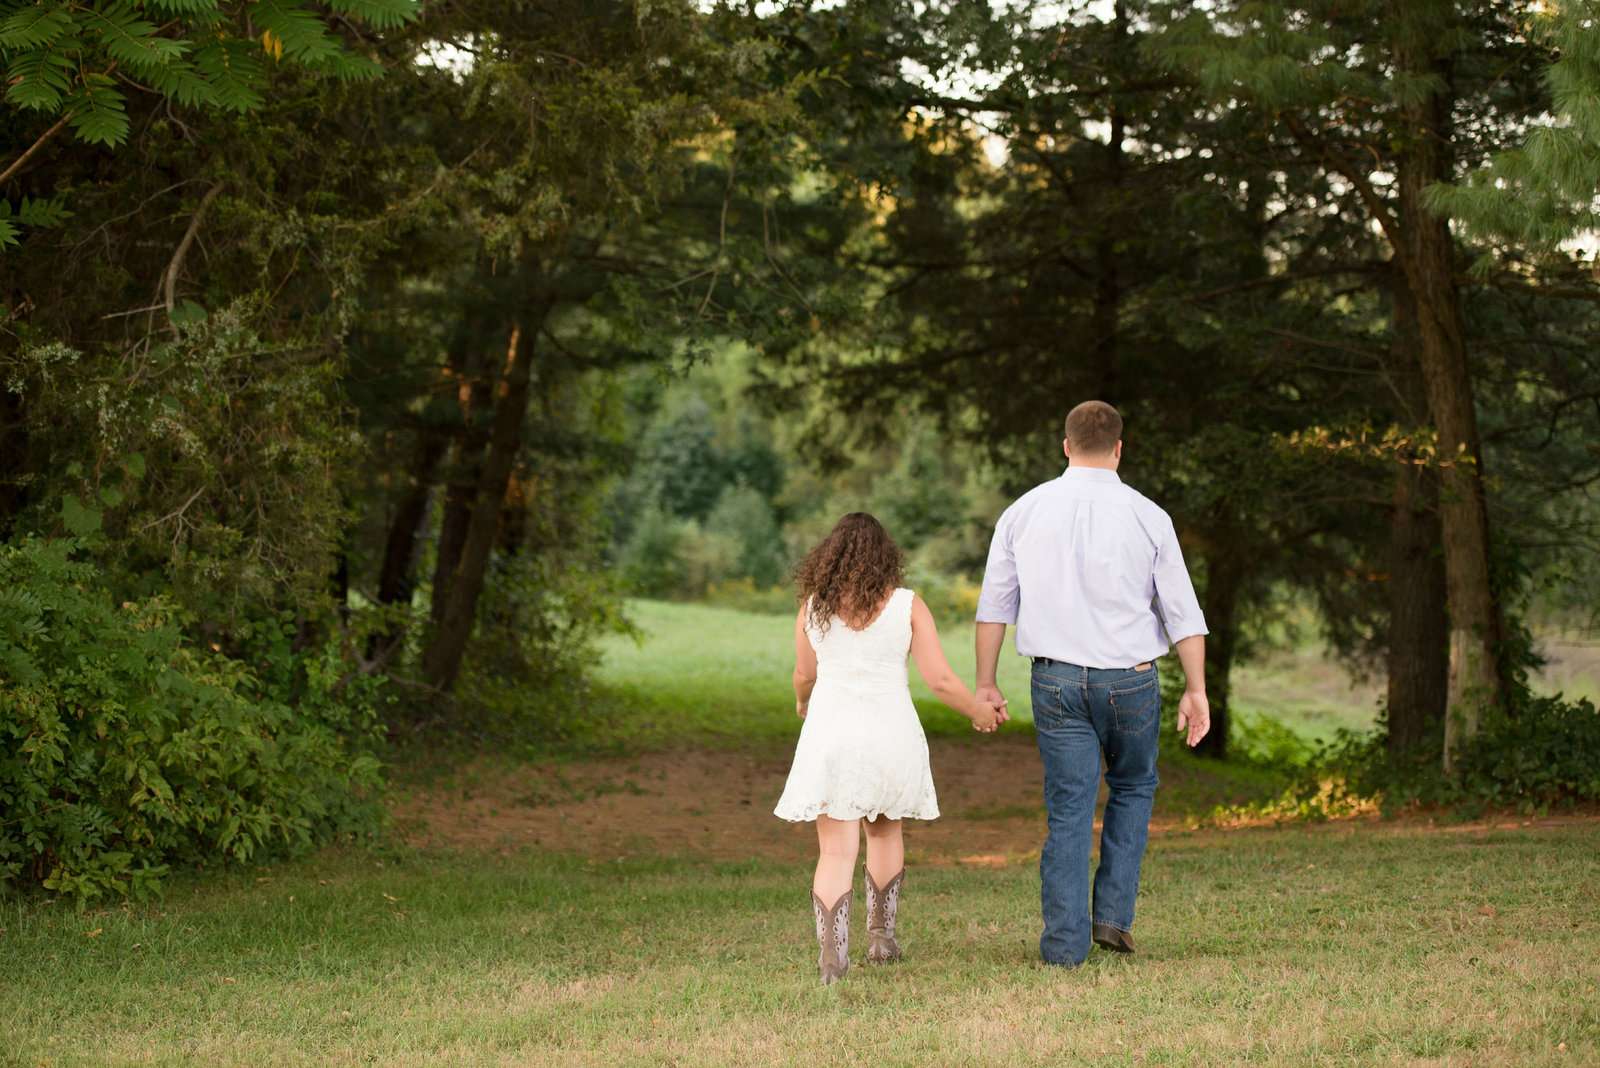 NJ_Rustic_Engagement_Photography129